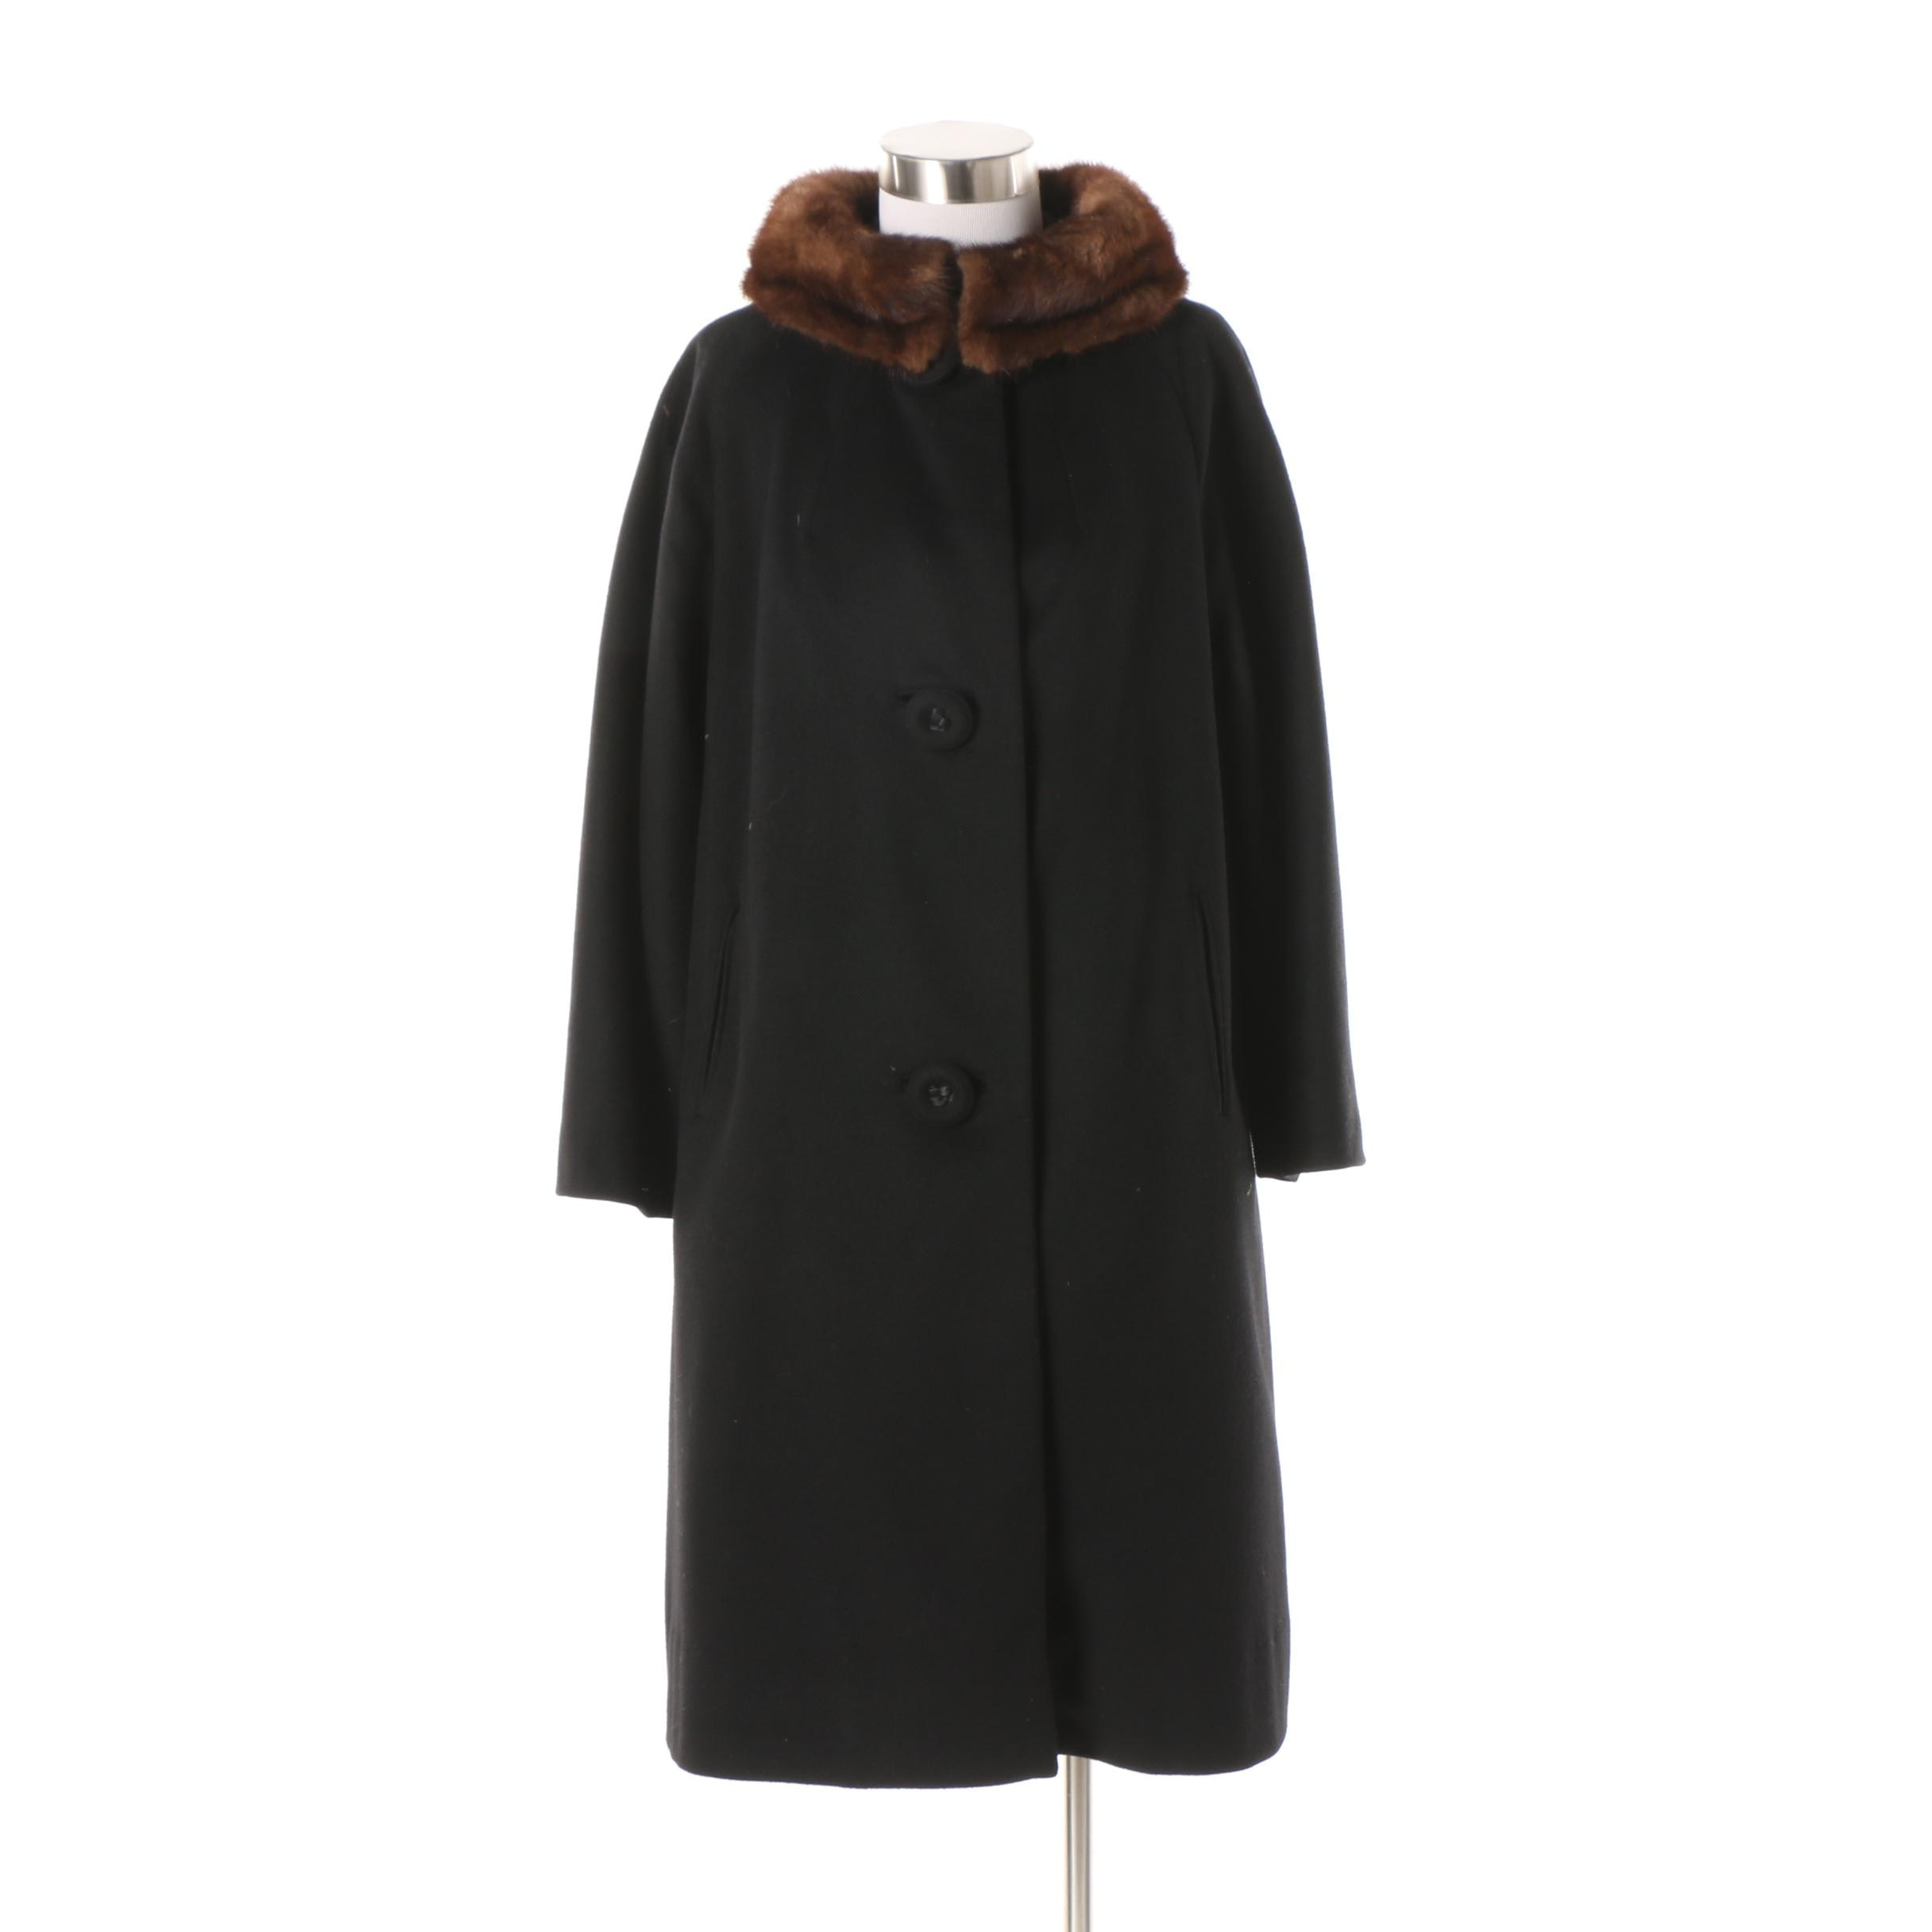 Women's Vintage Brawson Black Wool Blend Coat with Mink Fur Collar